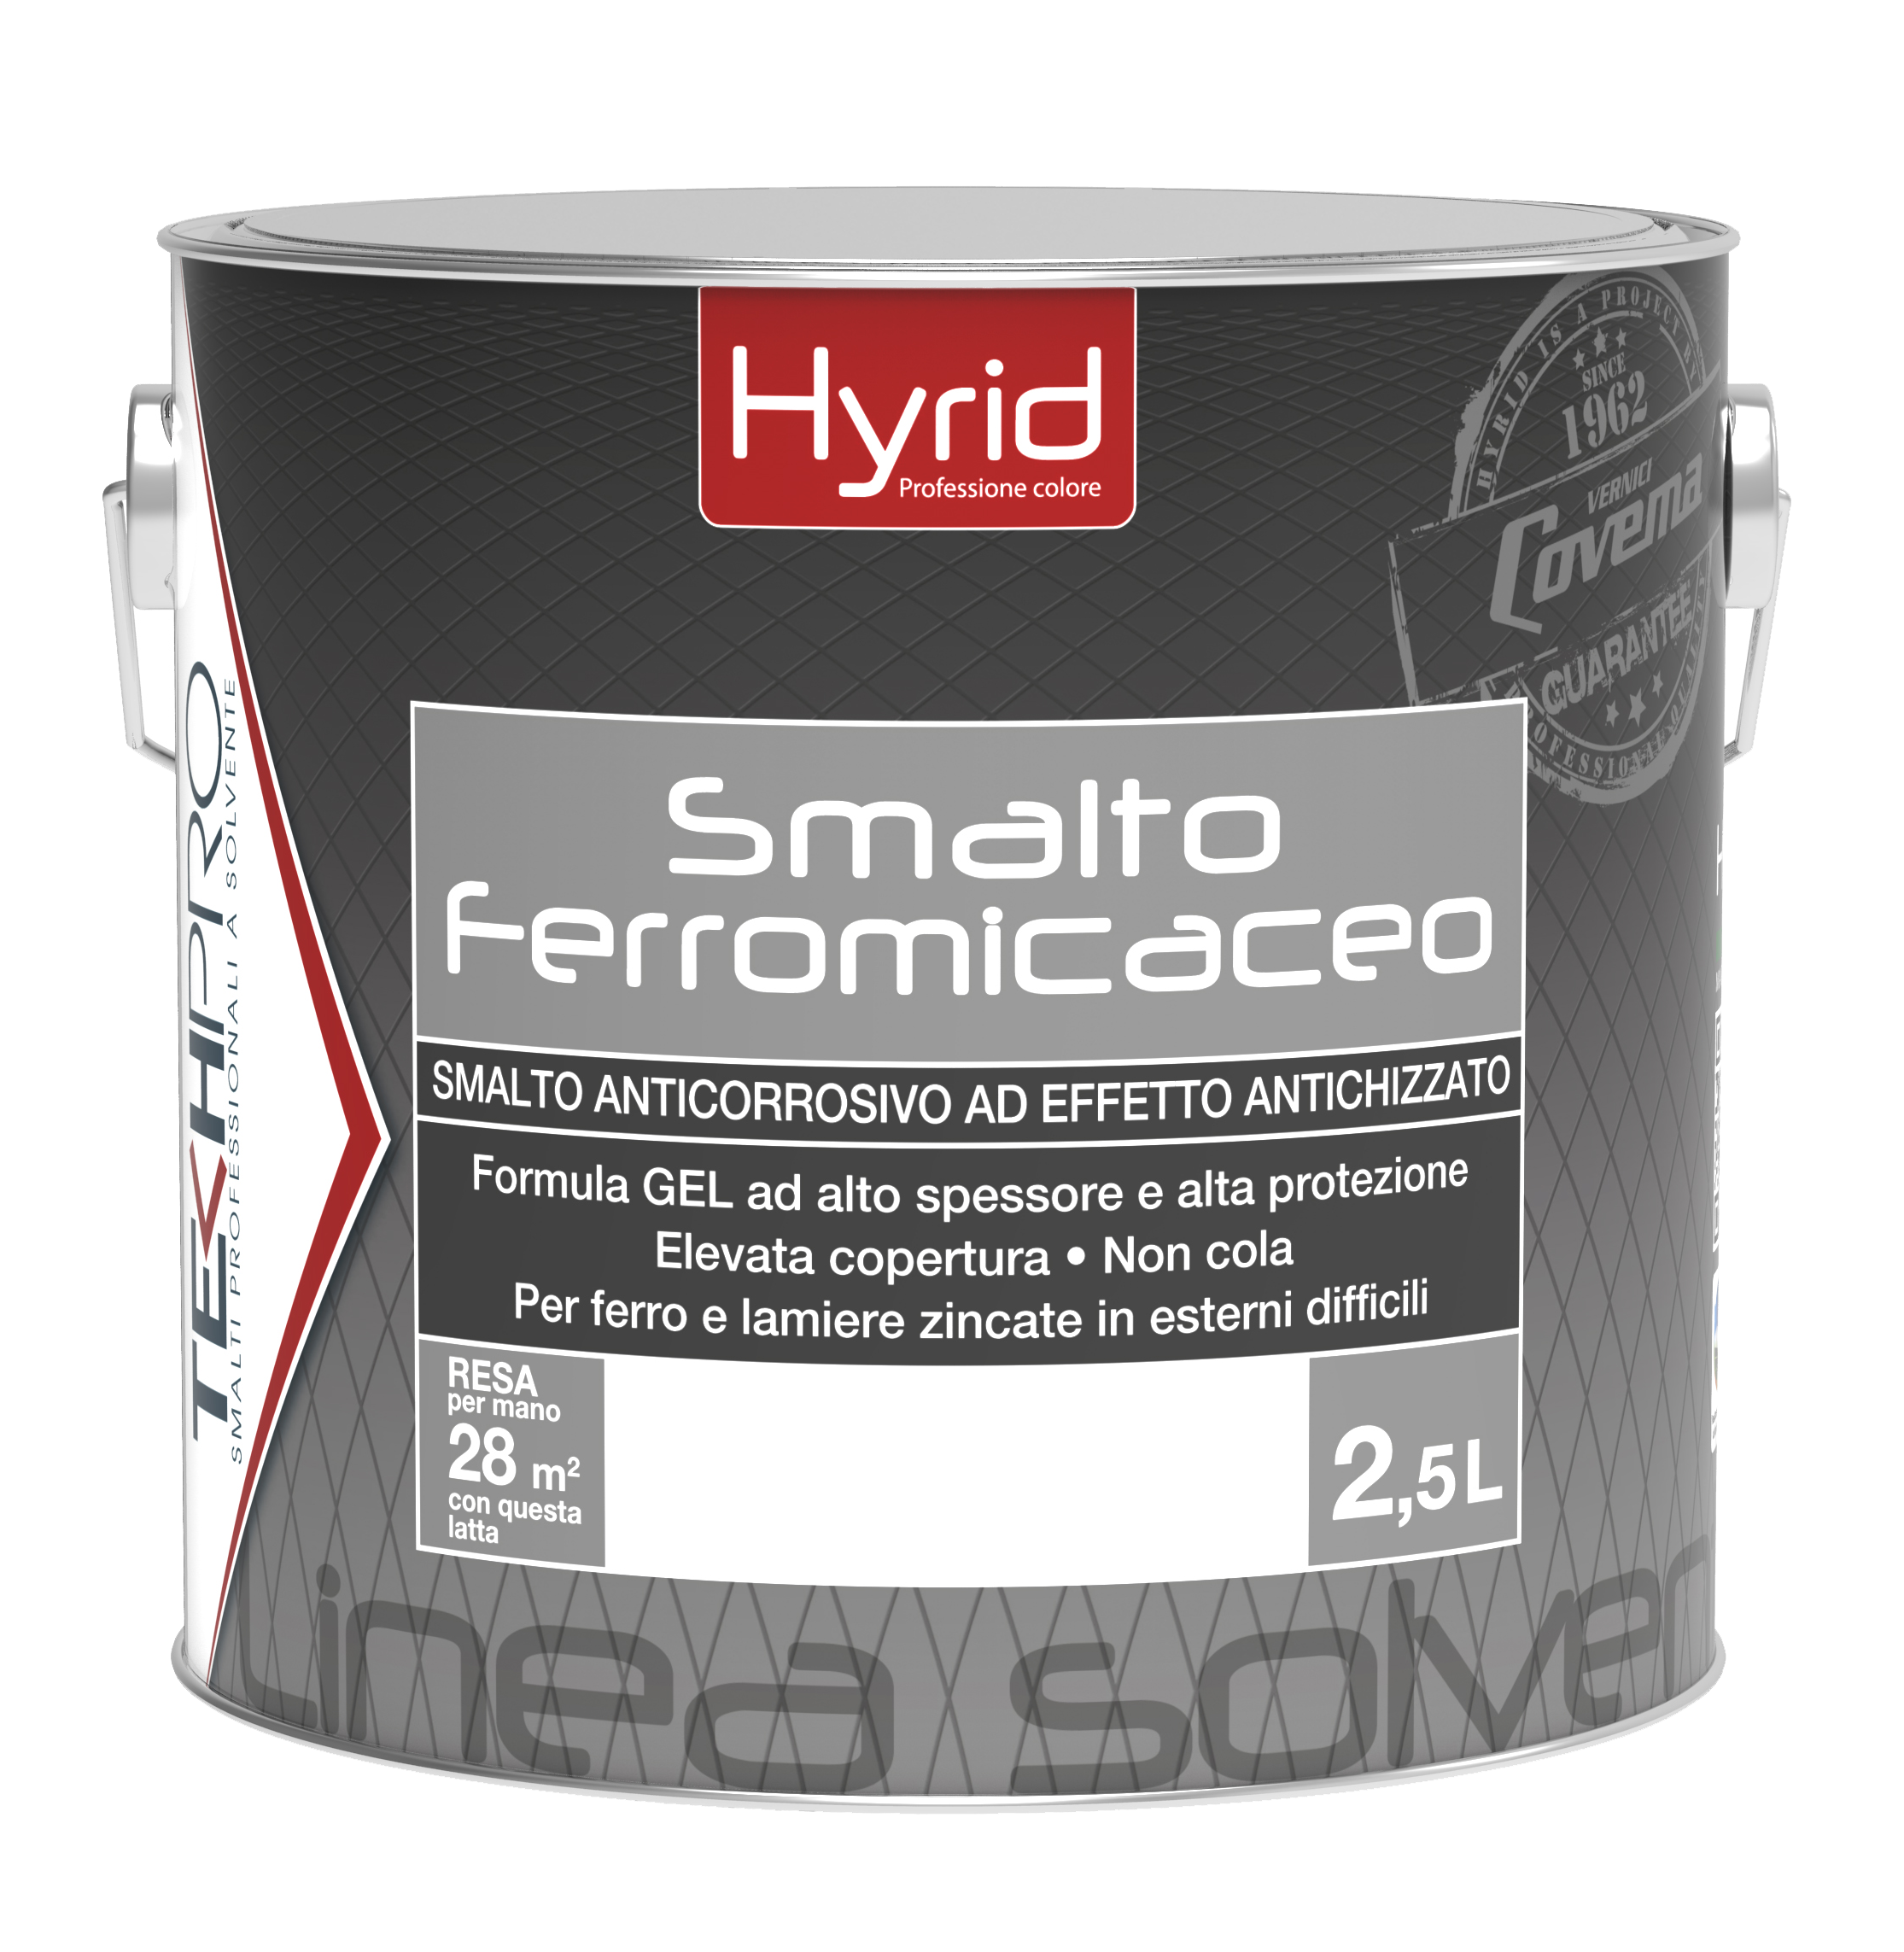 Hyrid Smalto Ferromicaceo